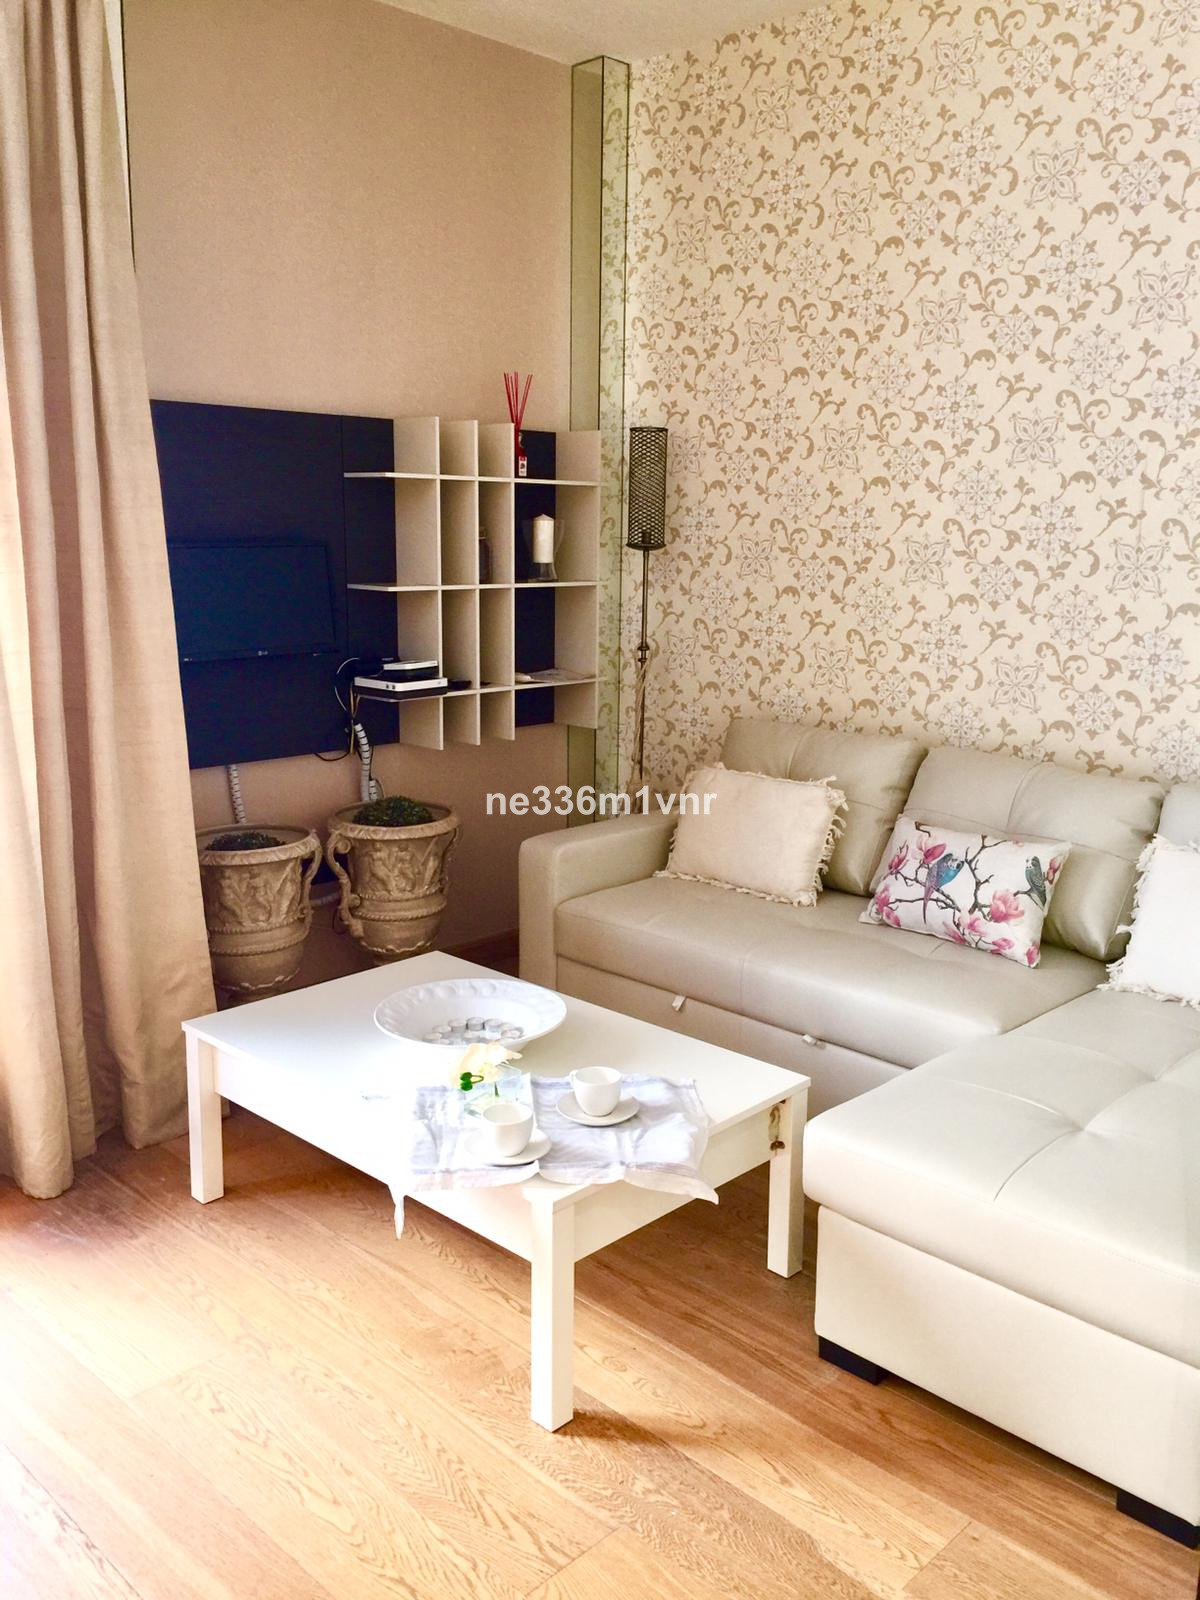 LUXURY FLAT IN THE HEART OF THE HISTORIC CENTRE!   Luminous apartment with luxury qualities, located, Spain